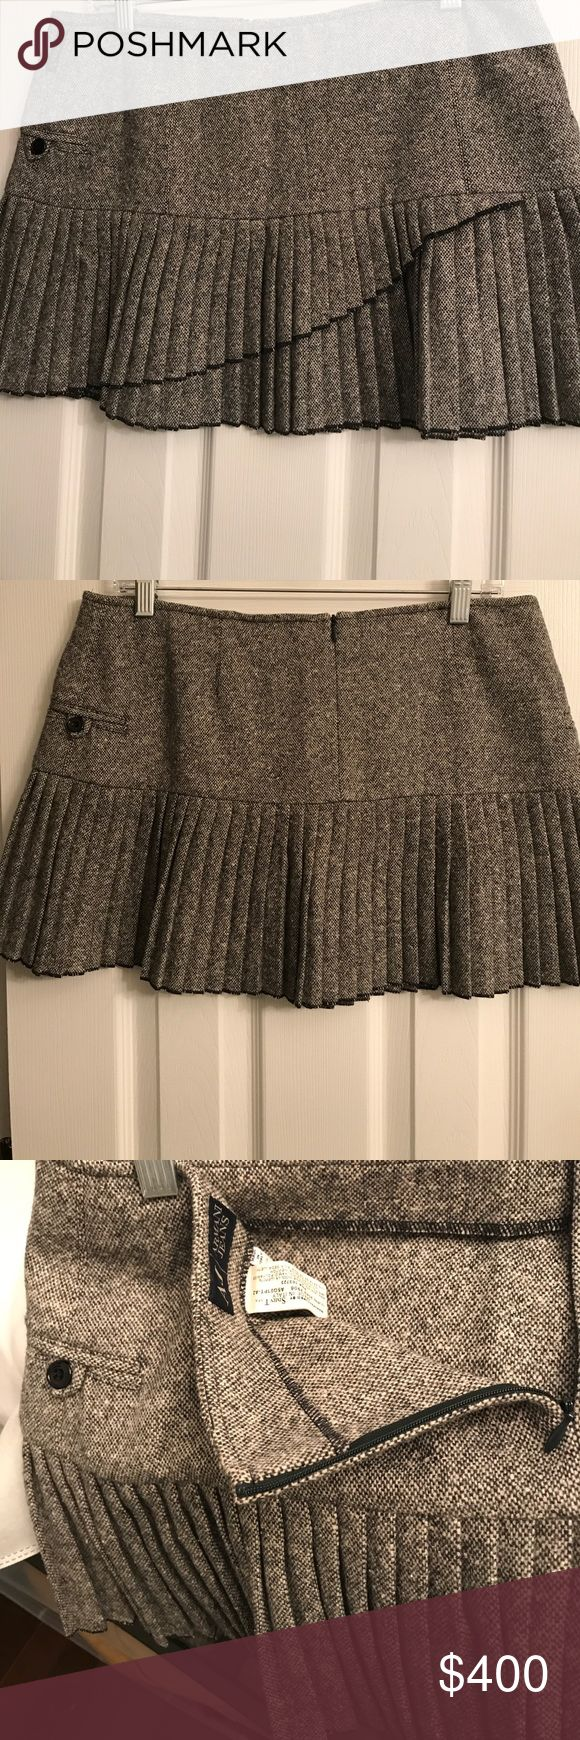 Armani Jean Grey Pleated Skirt Only worn once! Perfect condition! Armani Jeans Grey Pleated skirt. USA Size 10. Zipper in the back. Front has small pocket with Armani J label. Armani Jeans Skirts Midi